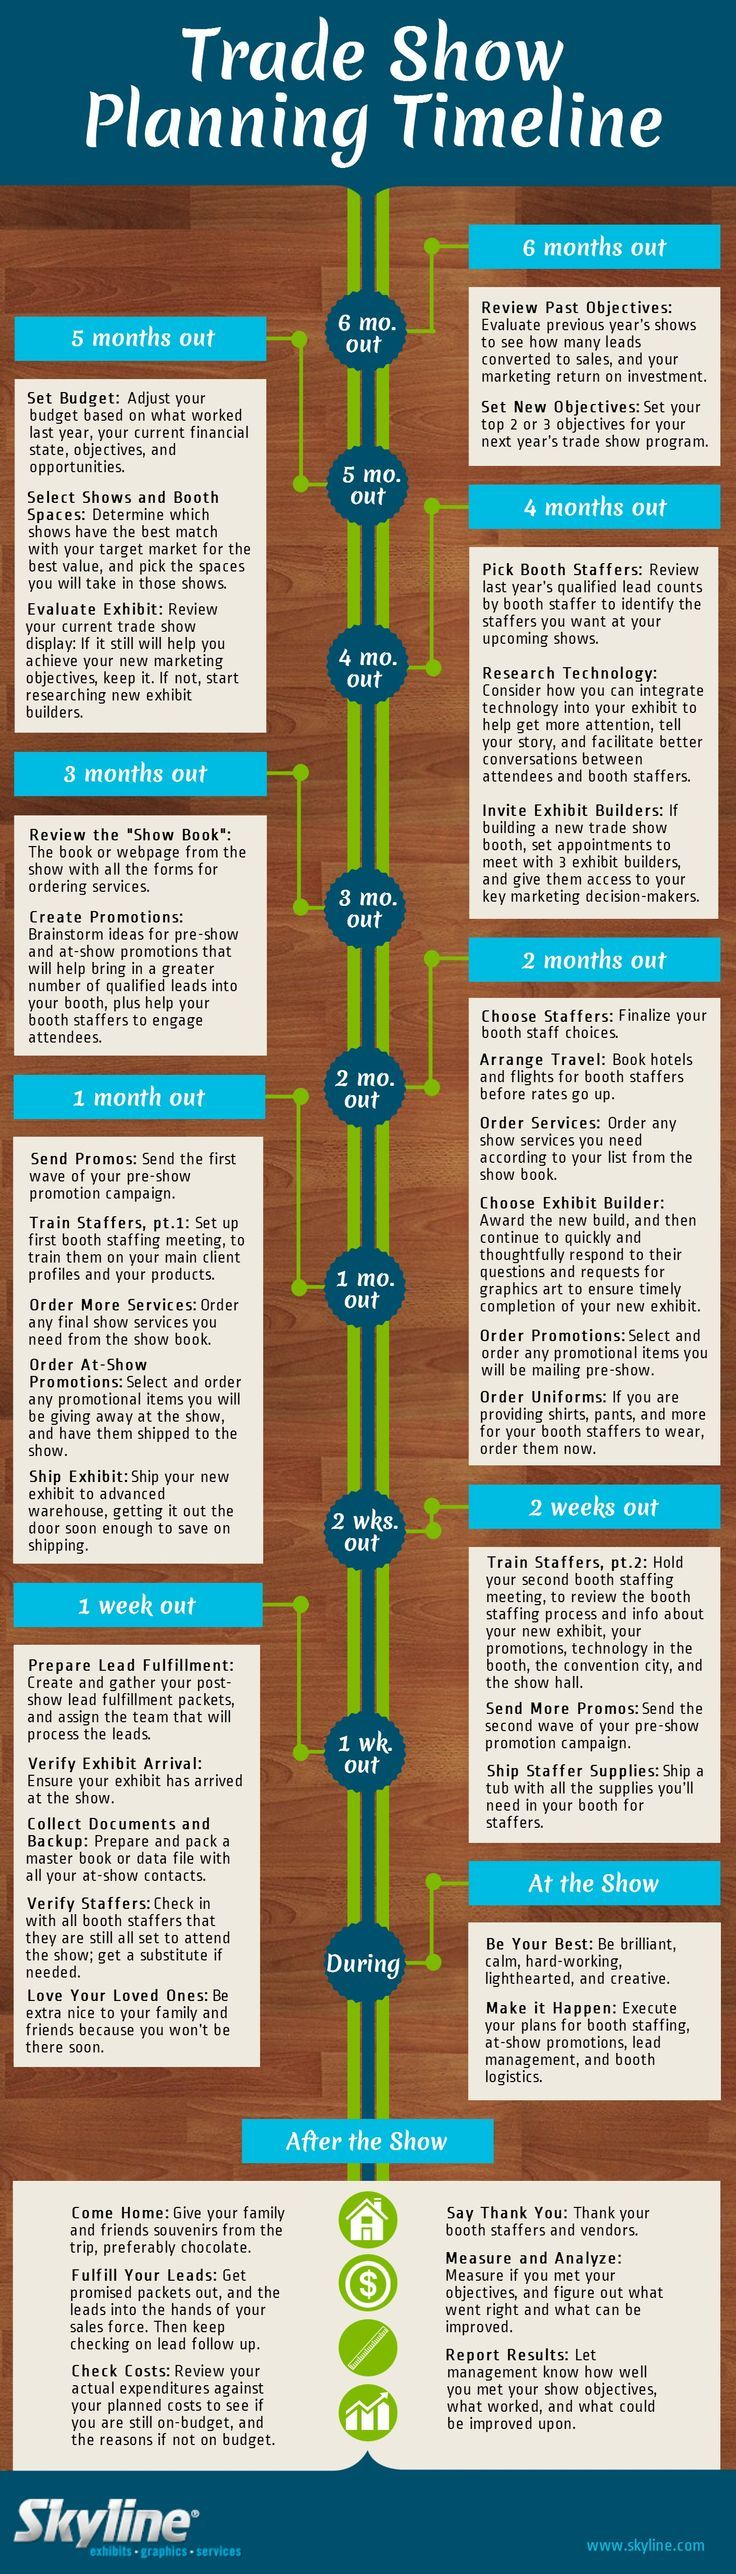 Trade Show Planning Timeline Skylineexhibits Infographic